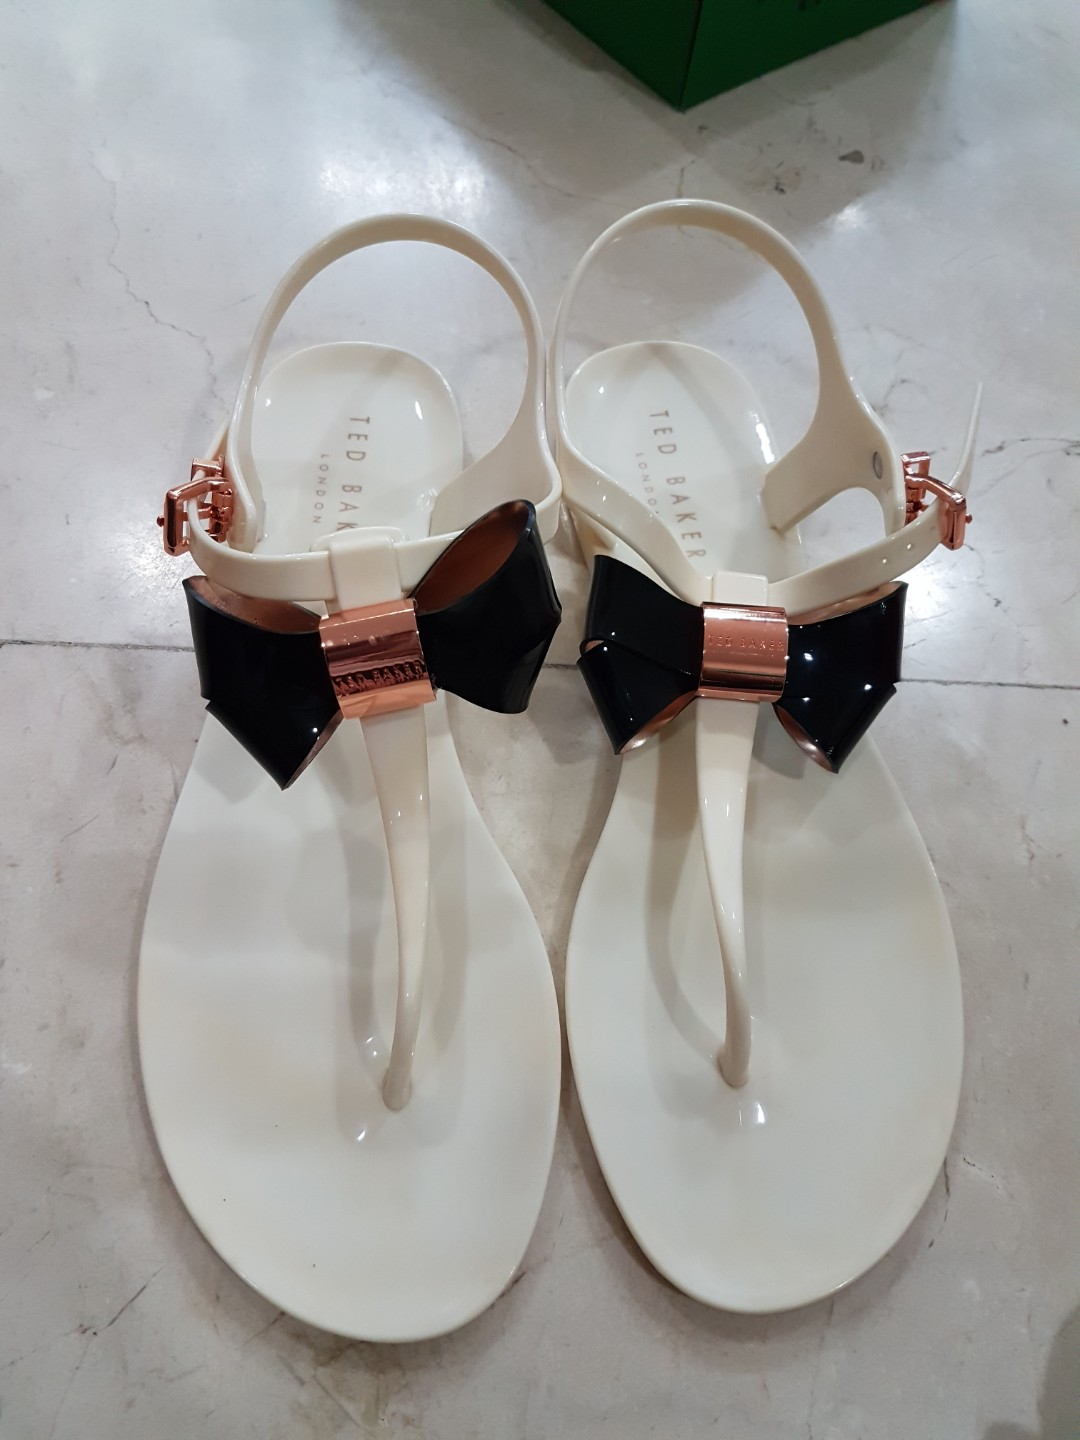 b003a851b Ted Baker Jelly Sandals